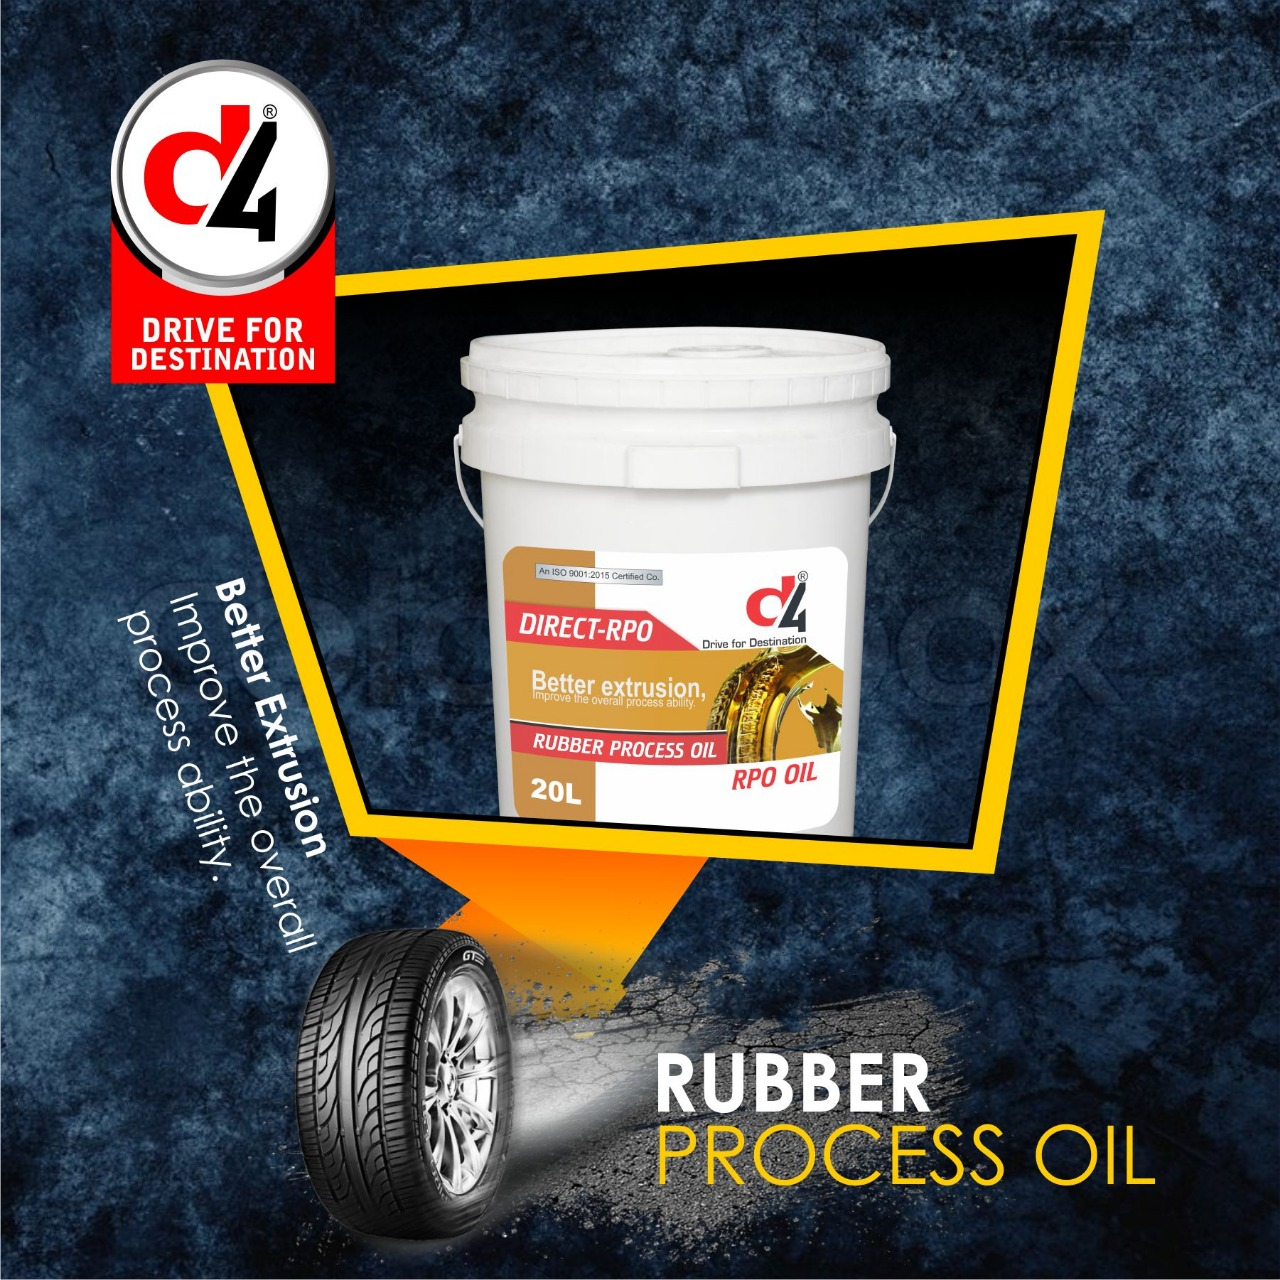 Rubber Process oil Manufacturer in India